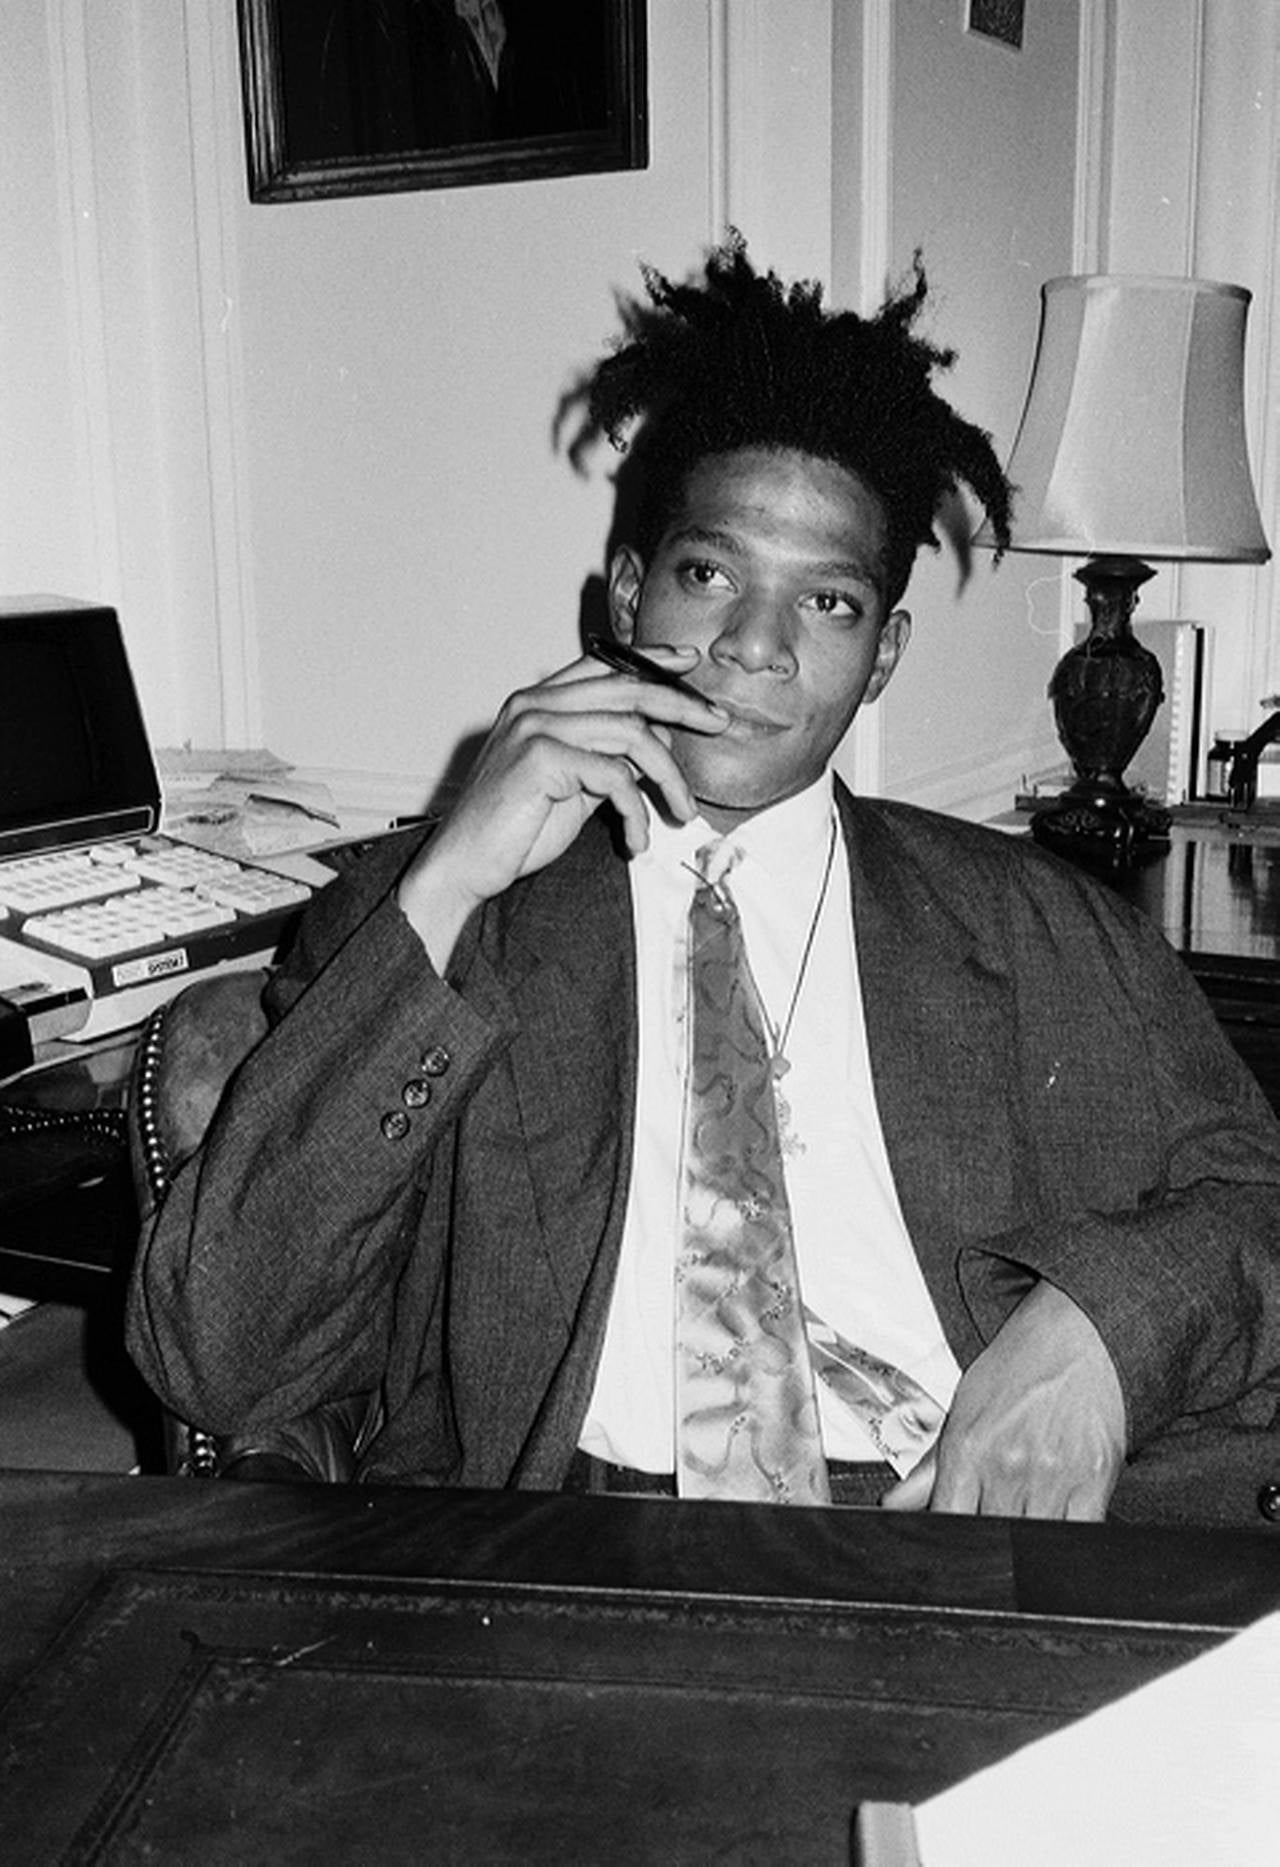 Roxanne Lowit, <i>Jean-Michel Basquiat II</i>, 20th century, offered by Preiss Fine Arts Photographers Limited Editions